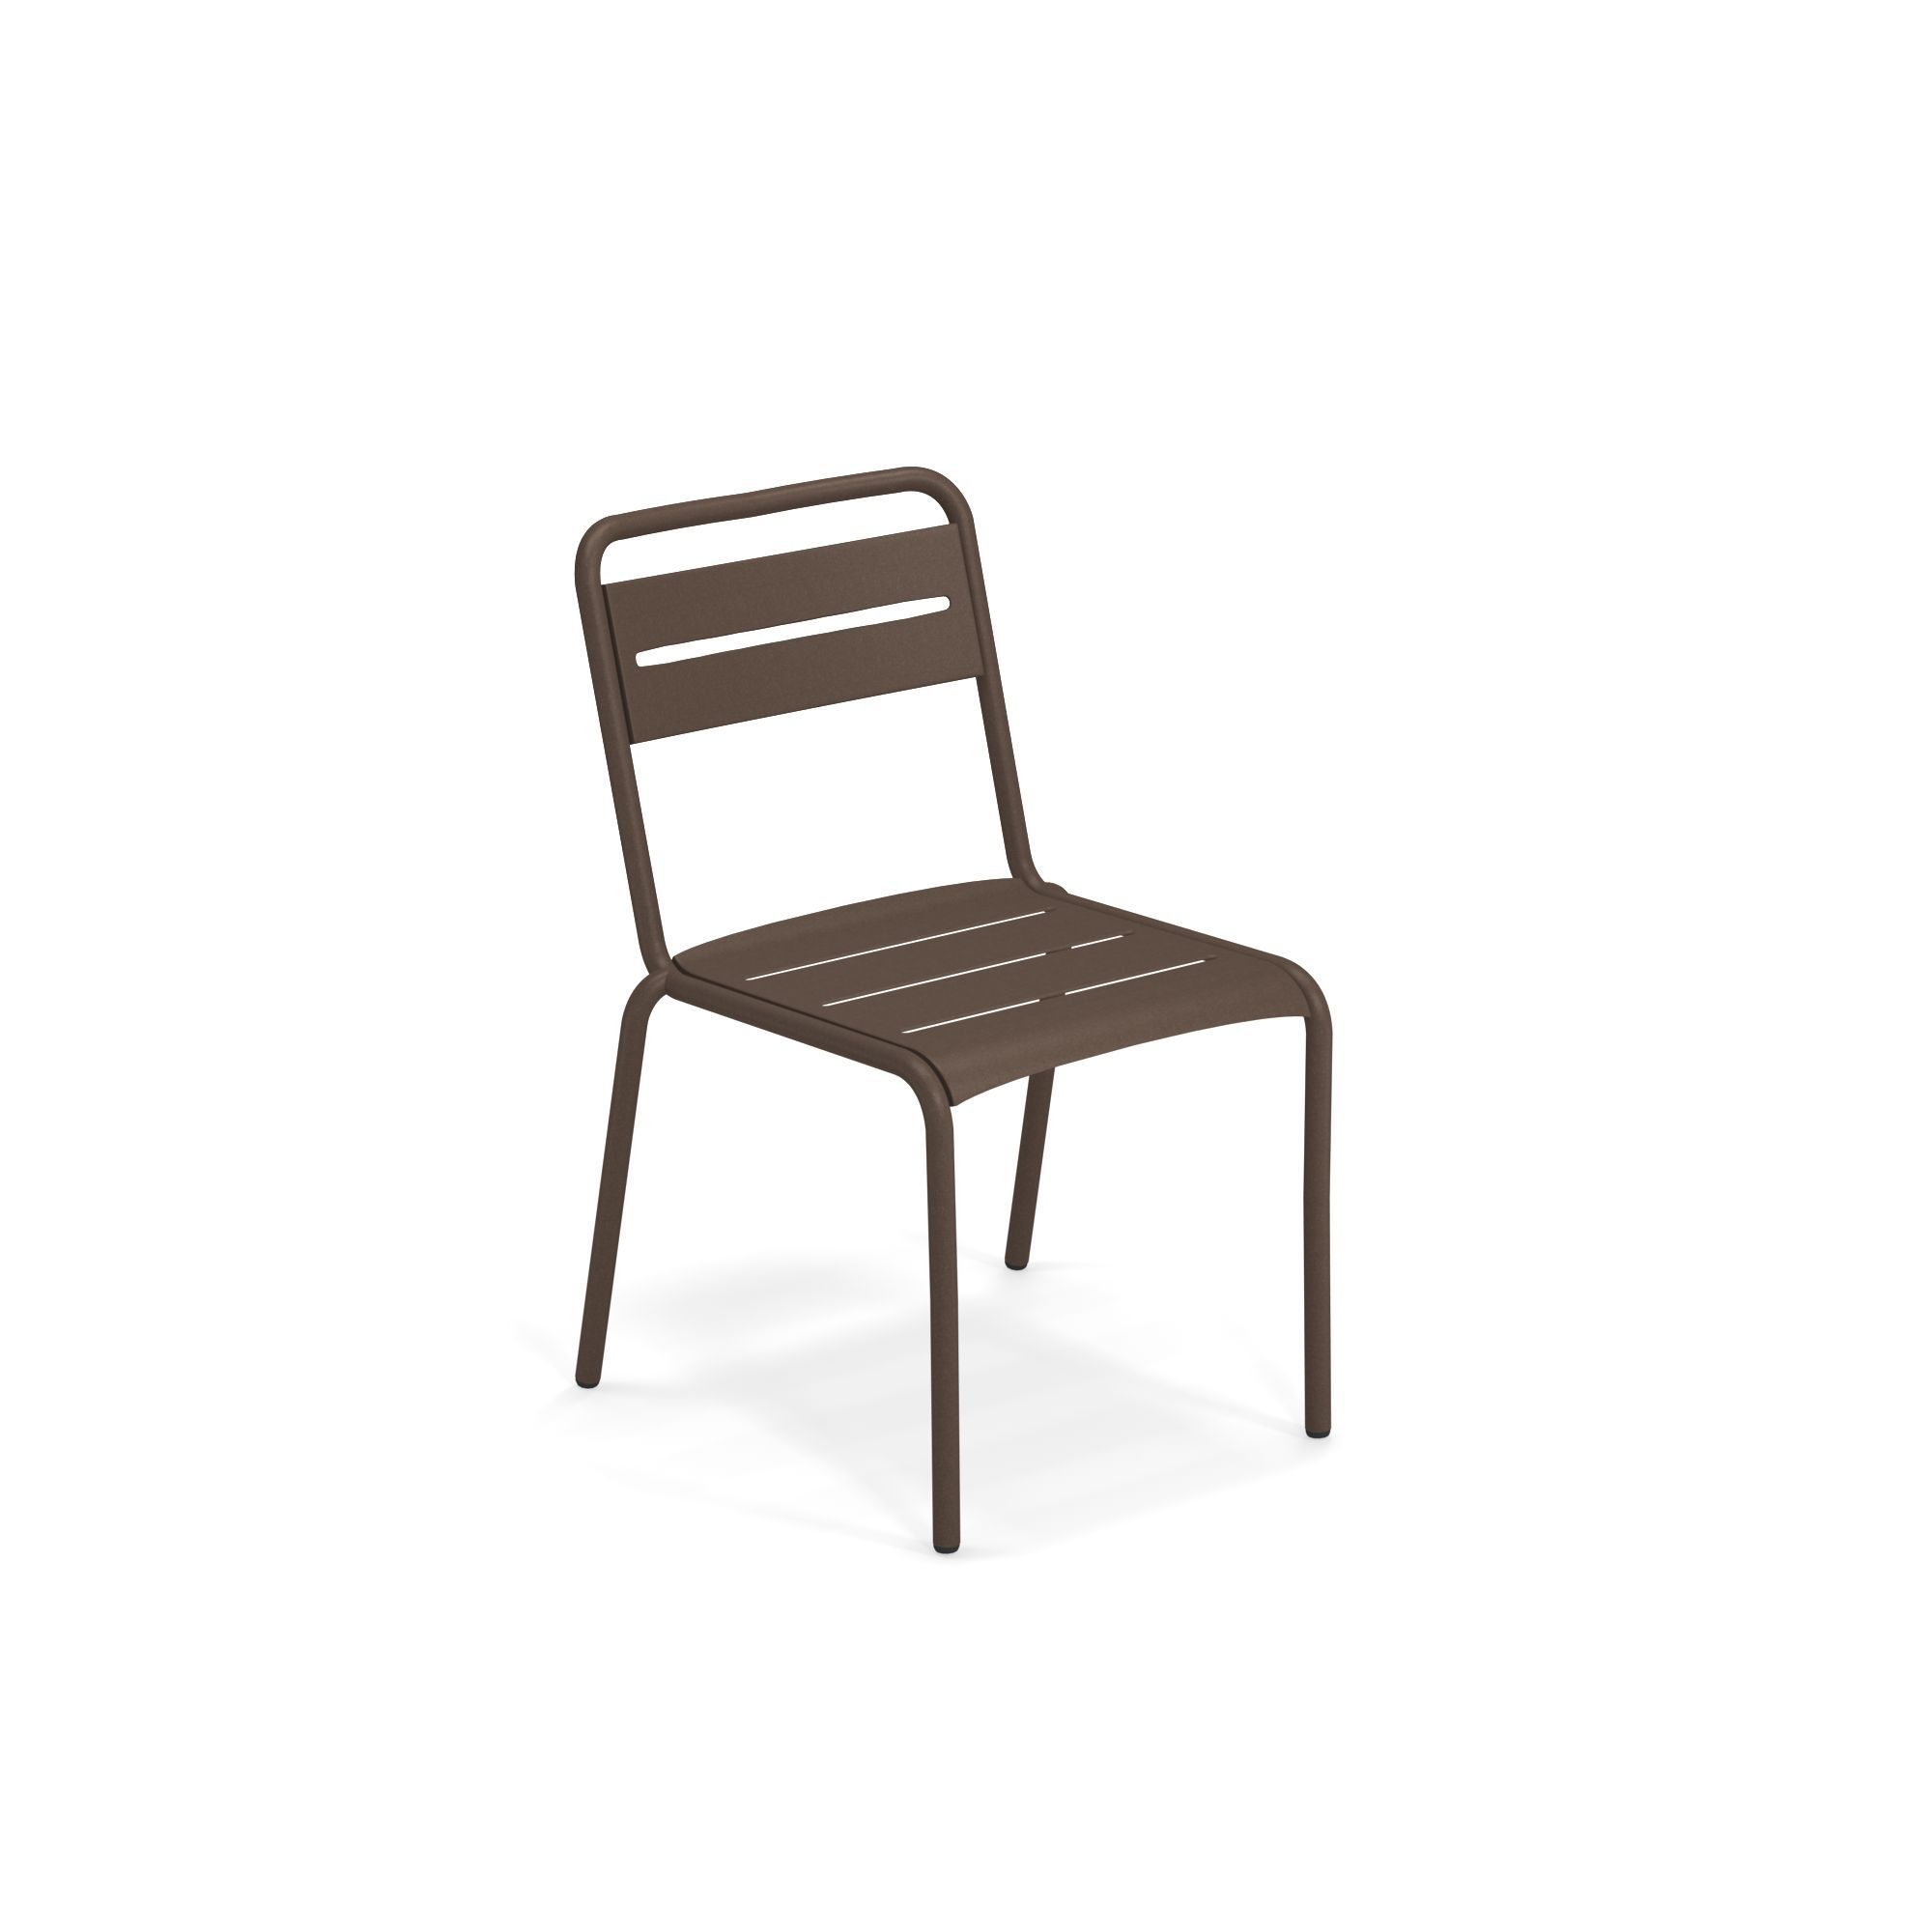 emuamericas, llc 161-41 chair, side, stacking, outdoor